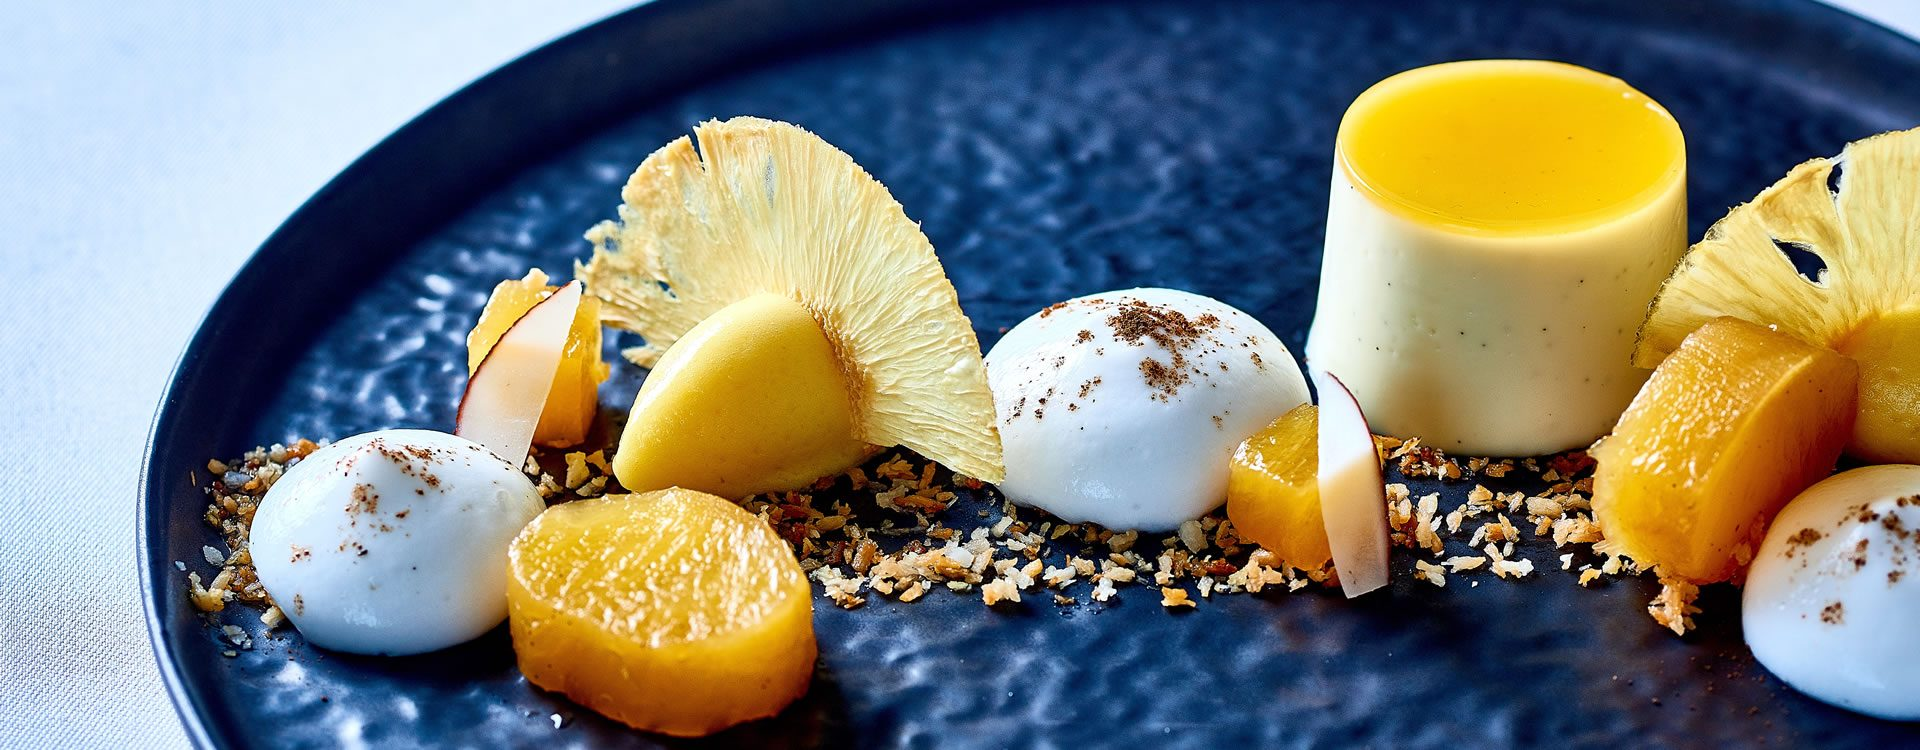 Michelin Star Restaurants in Devon - Lympstone Manor